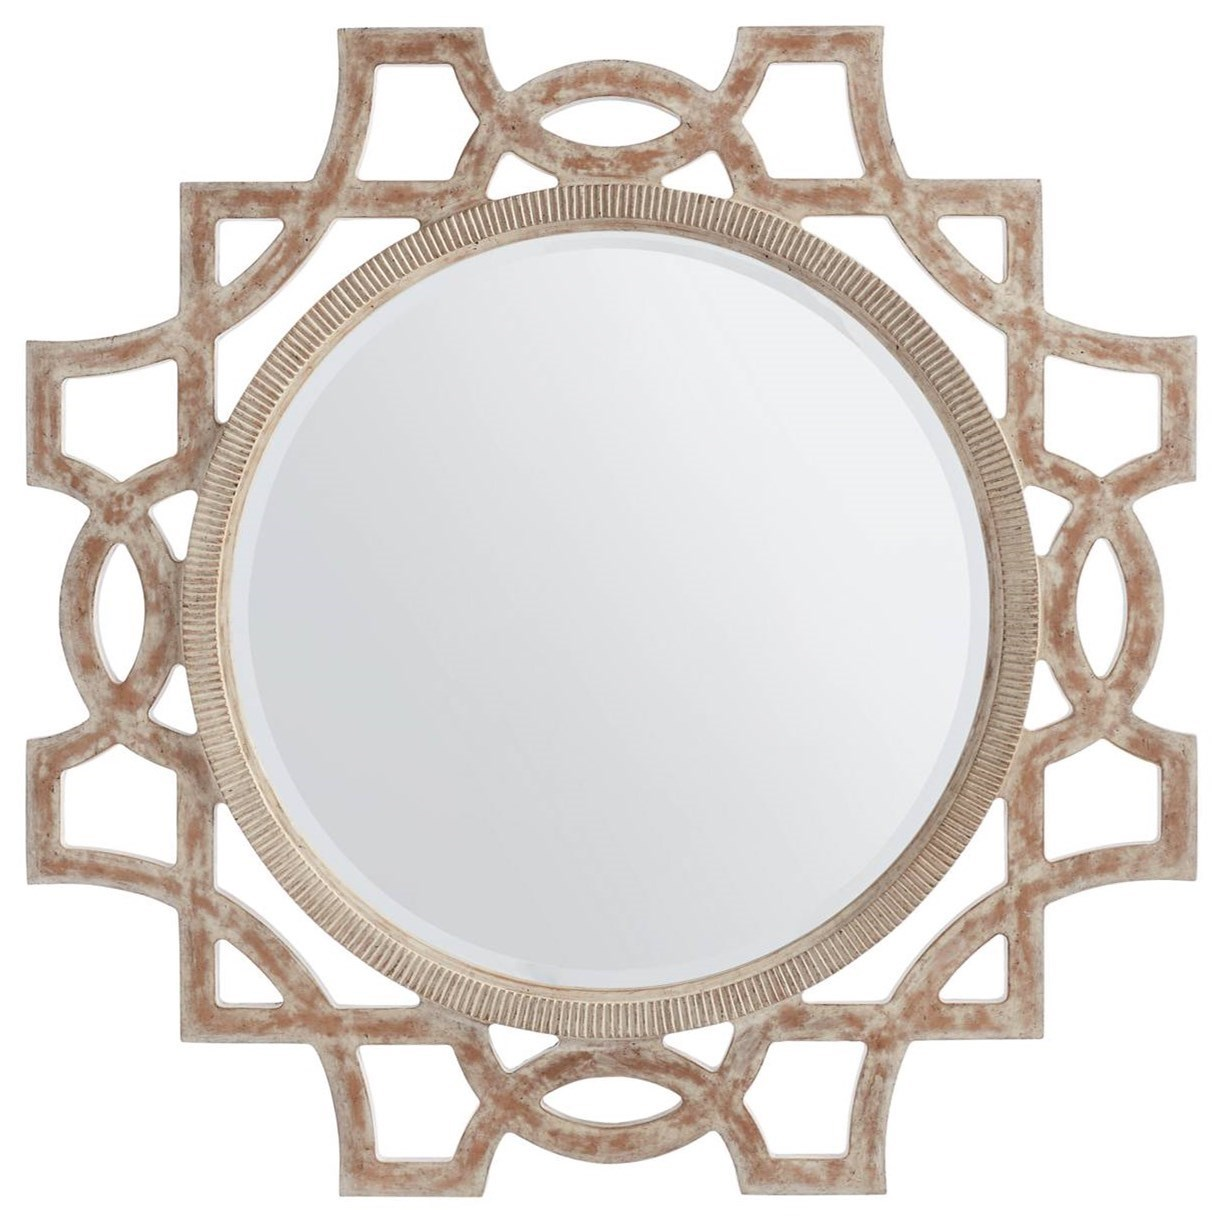 Stanley furniture juniper dell 615 63 30 round accent for Accent mirrors